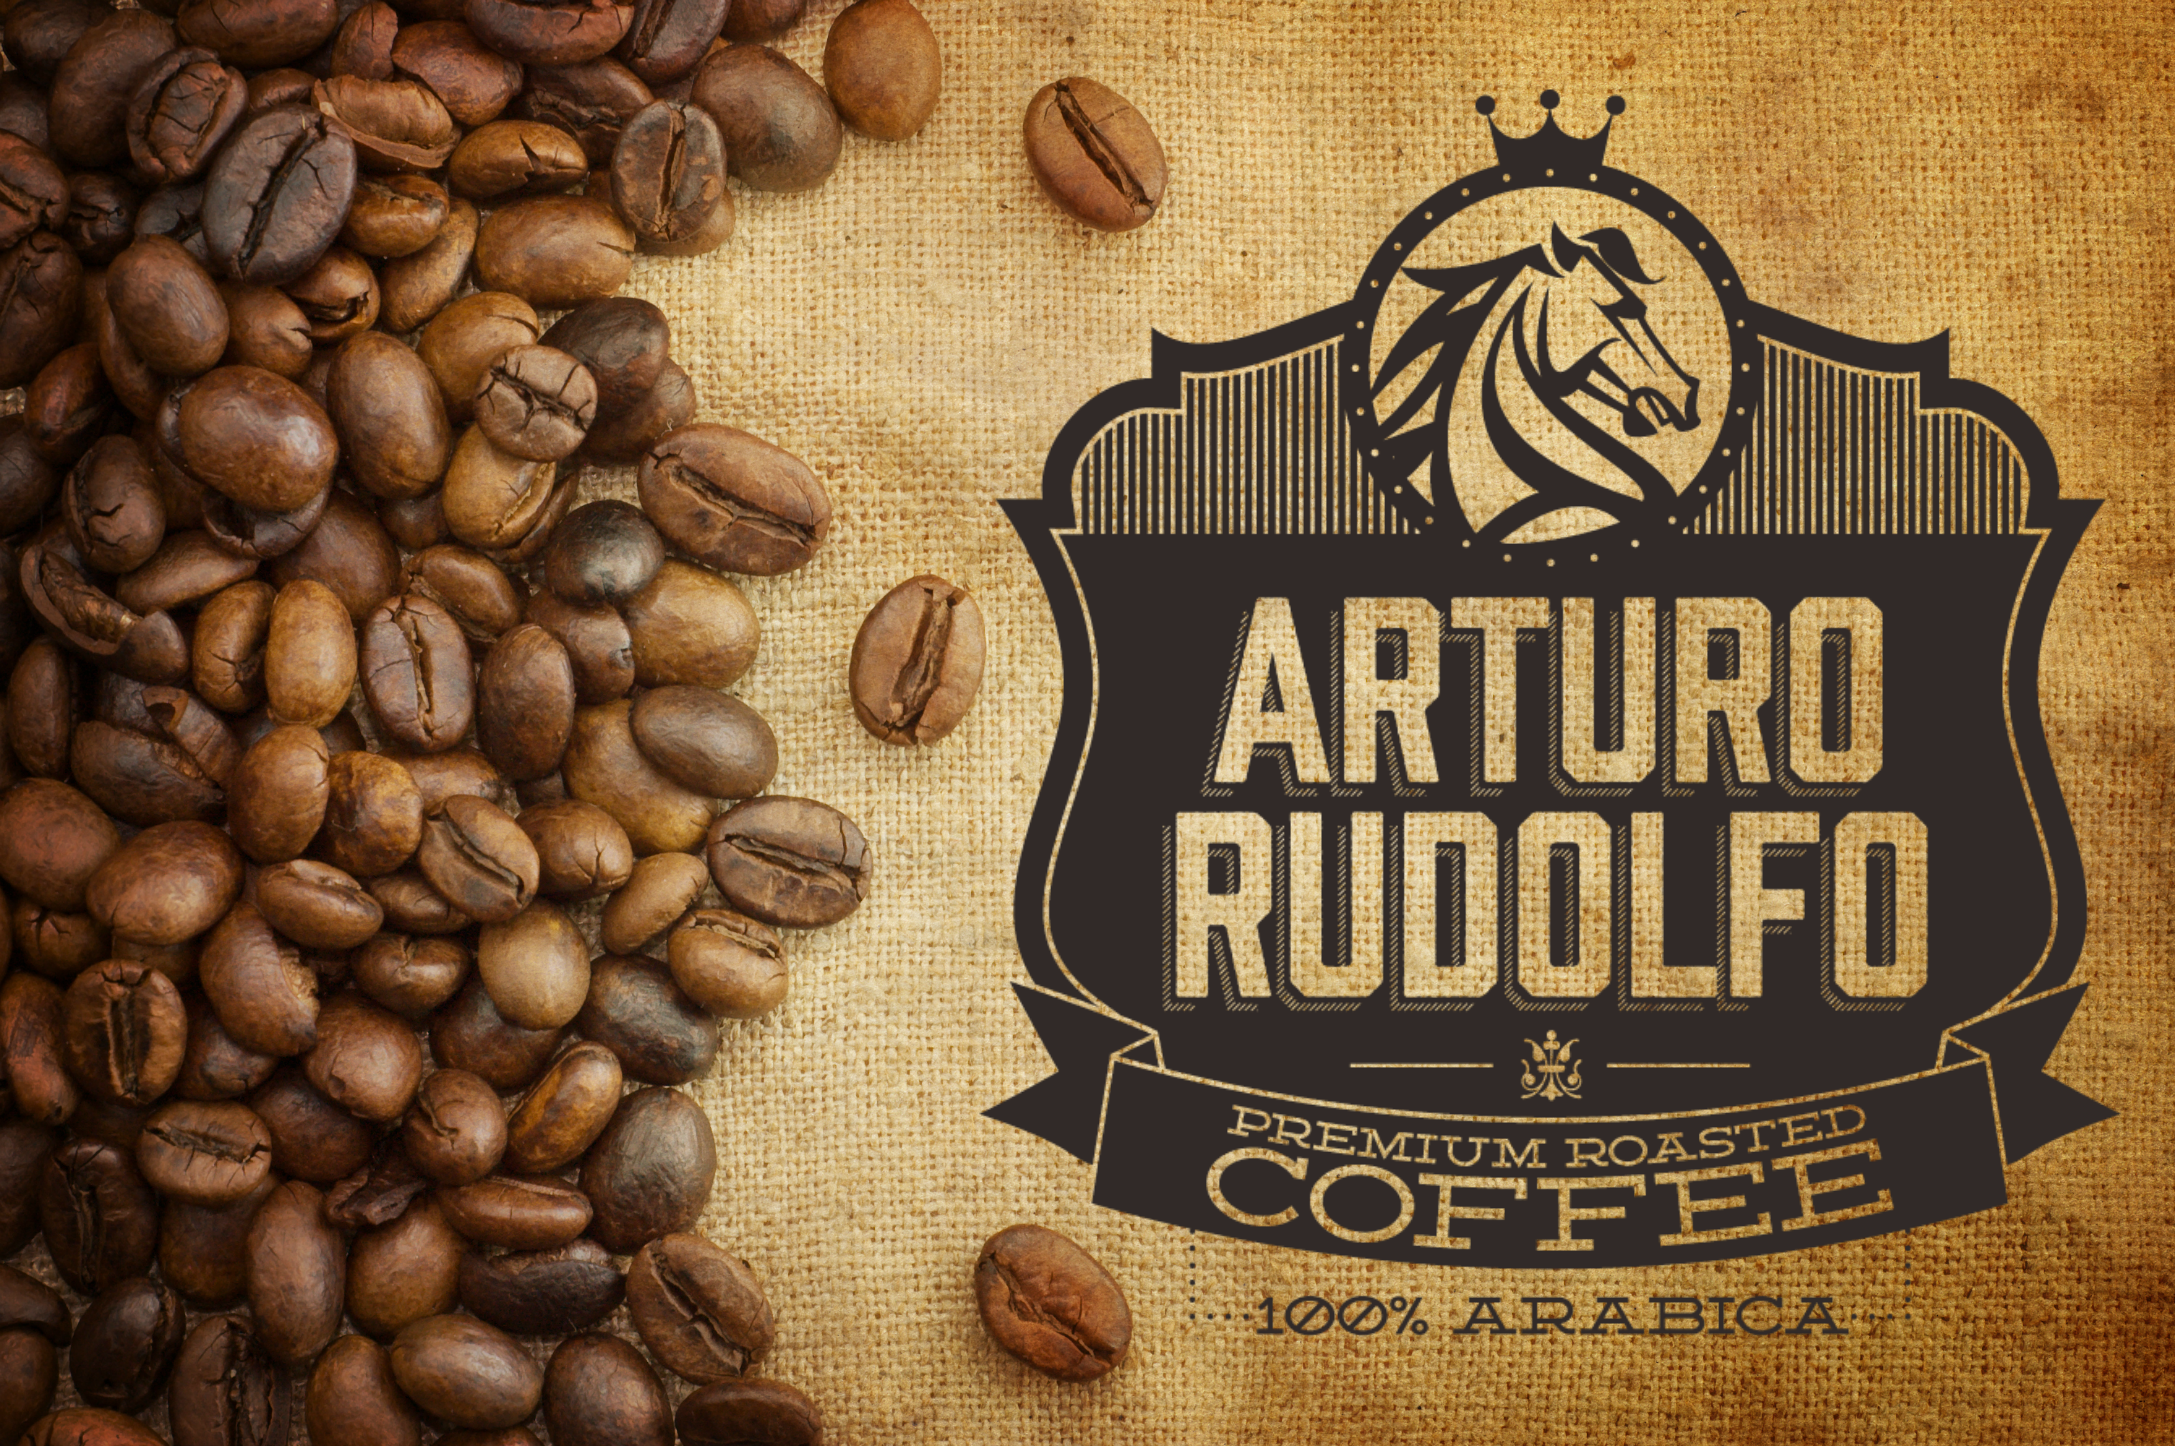 INTRODUCING THE ARTURO RUDOLFO...